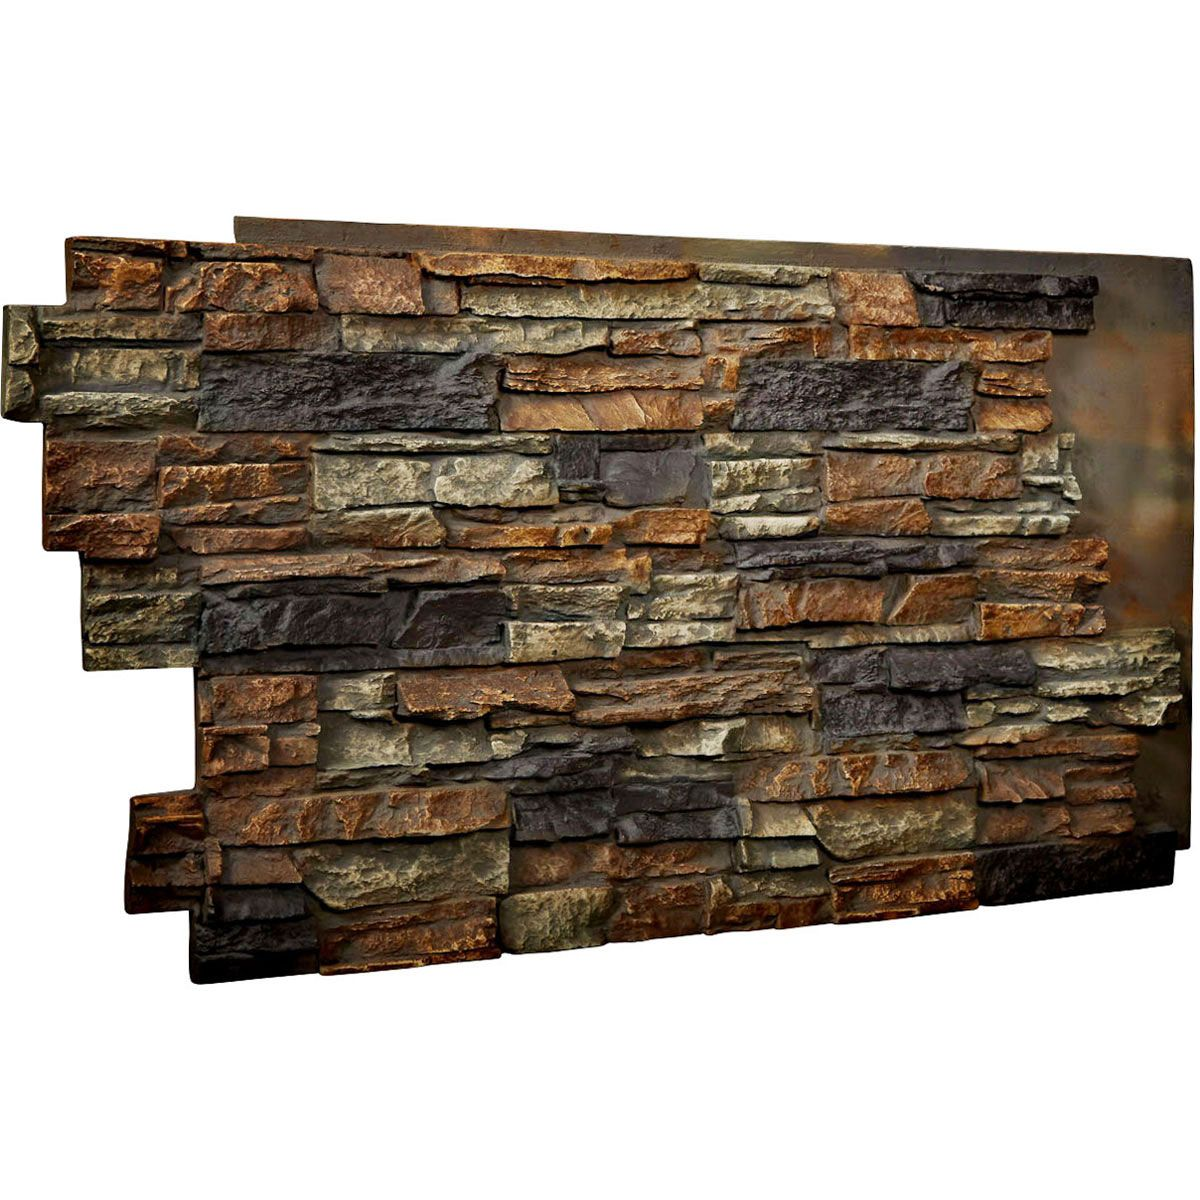 48 Inch W X 25 Inch H X 1 1 2 Inch D Stacked Endurathane Faux Stone Siding Panel Redstone Faux Stone Panels Stone Wall Panels Stacked Stone Walls